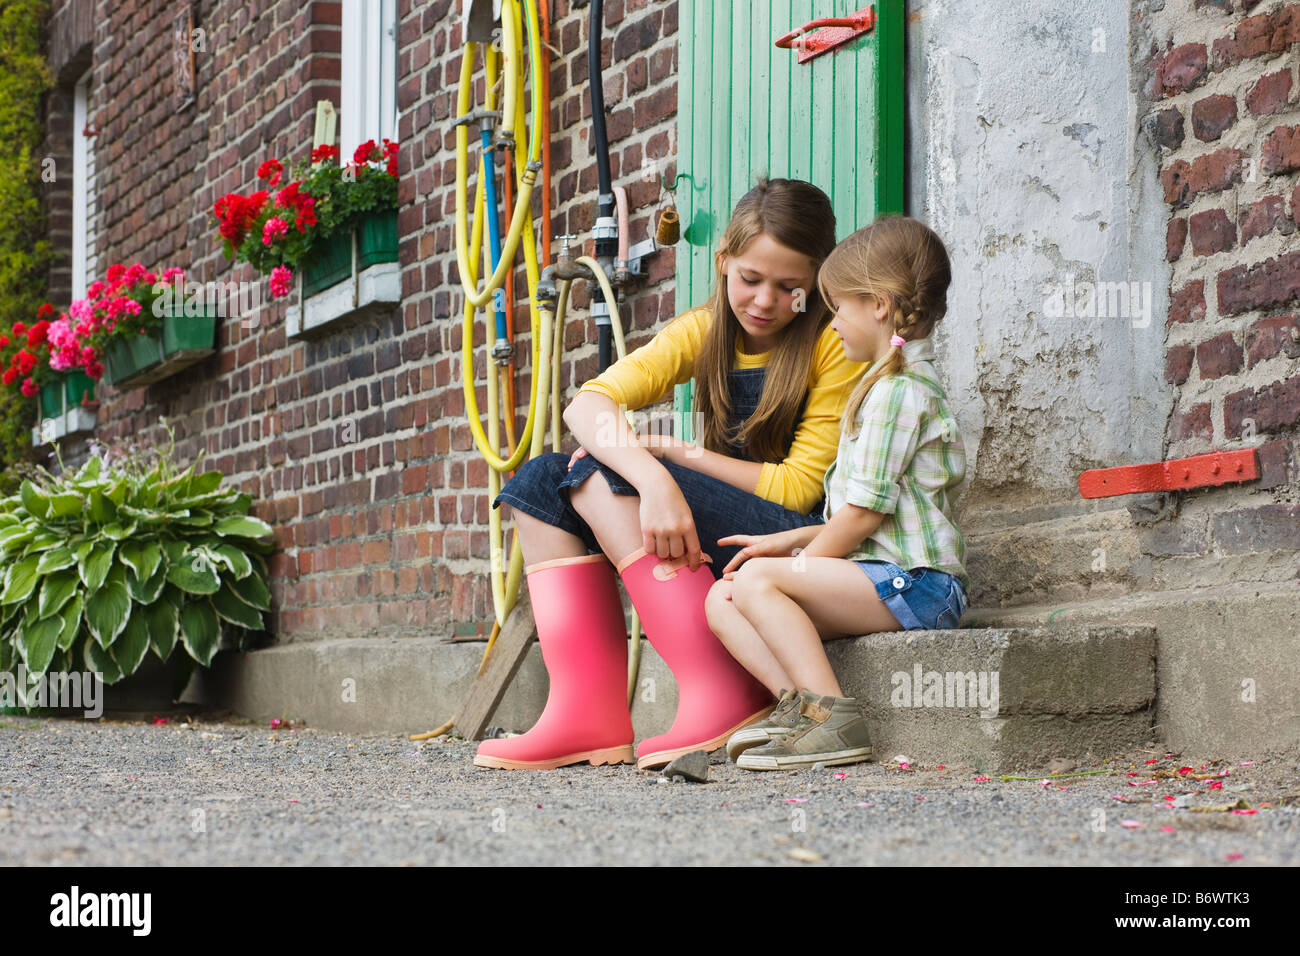 Sisters sitting on a step - Stock Image